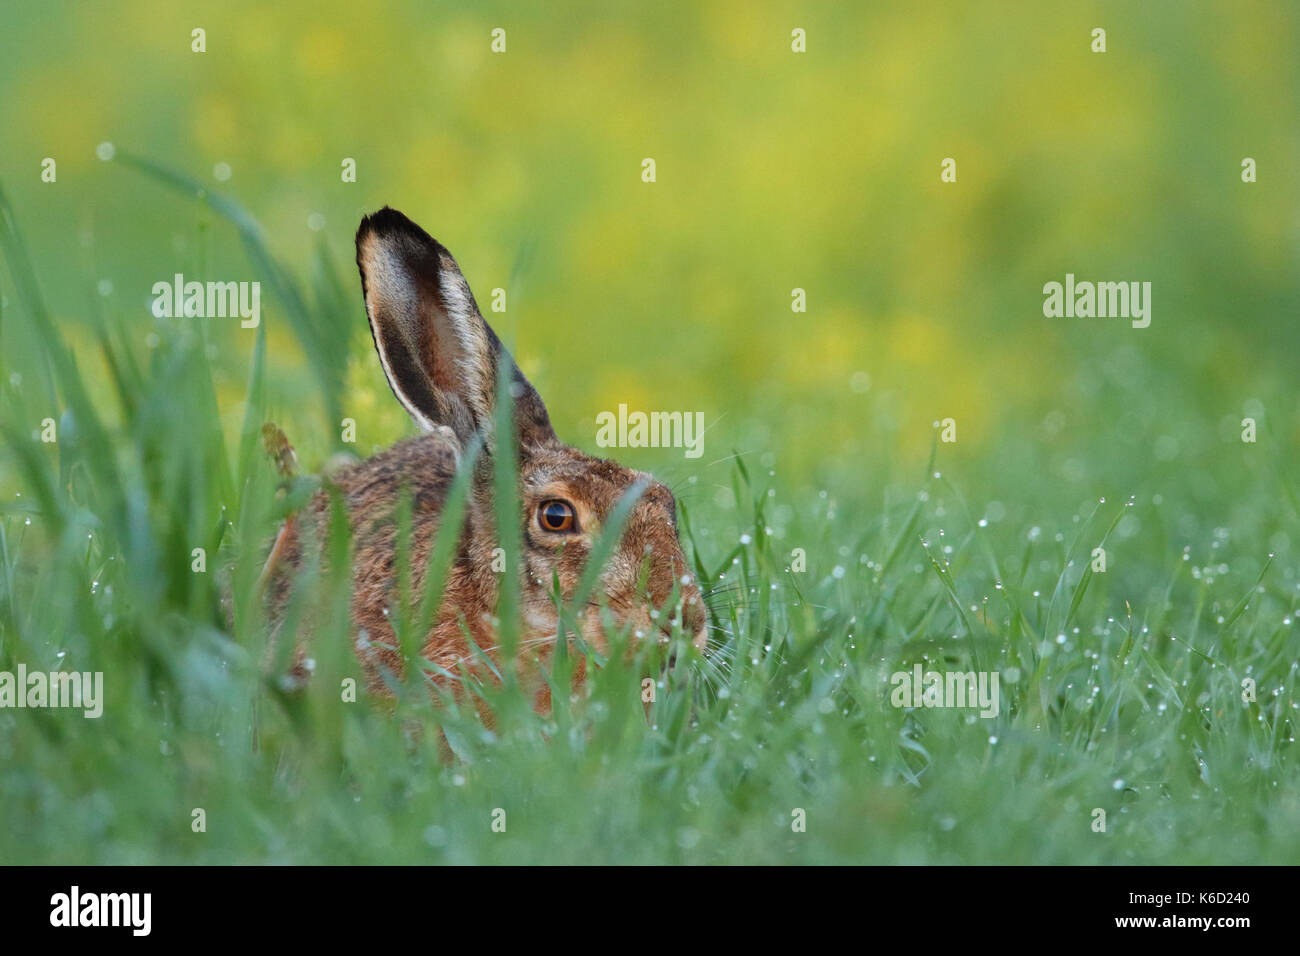 European Brown Hare (Lepus europaeus) sitting in a dew wet field. Europe - Stock Image